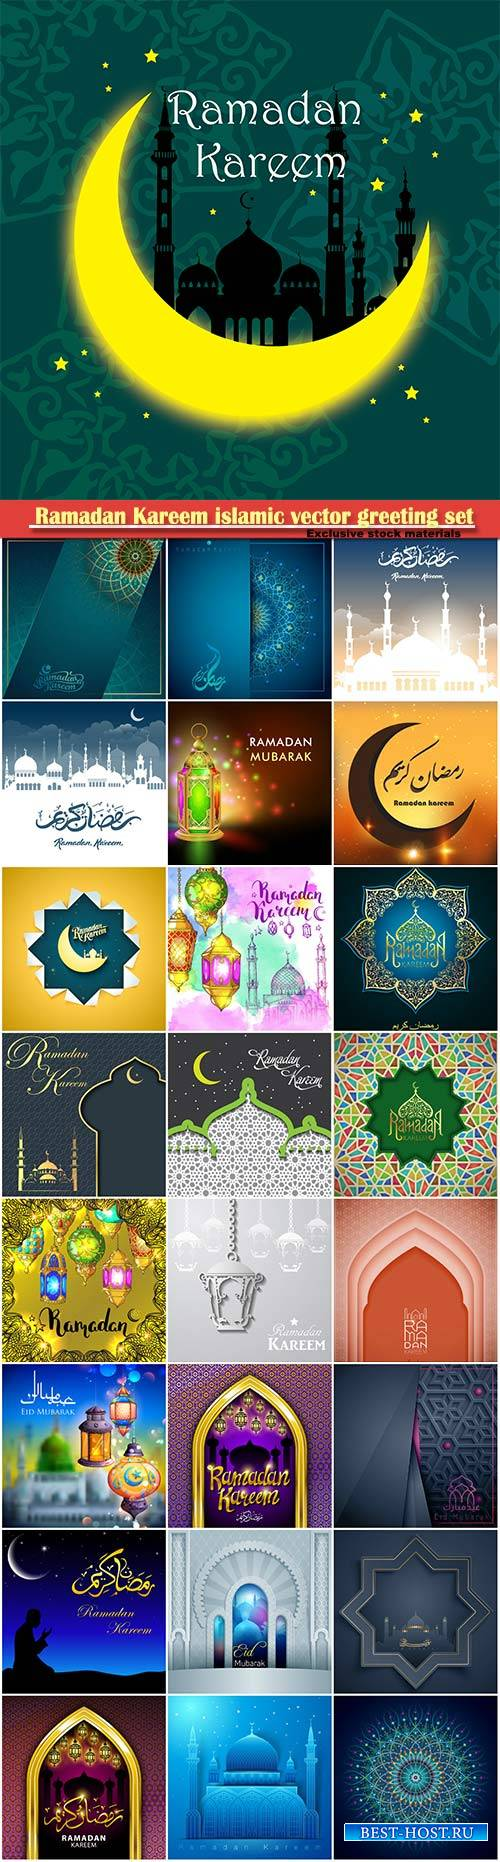 Ramadan Kareem islamic vector greeting set # 2